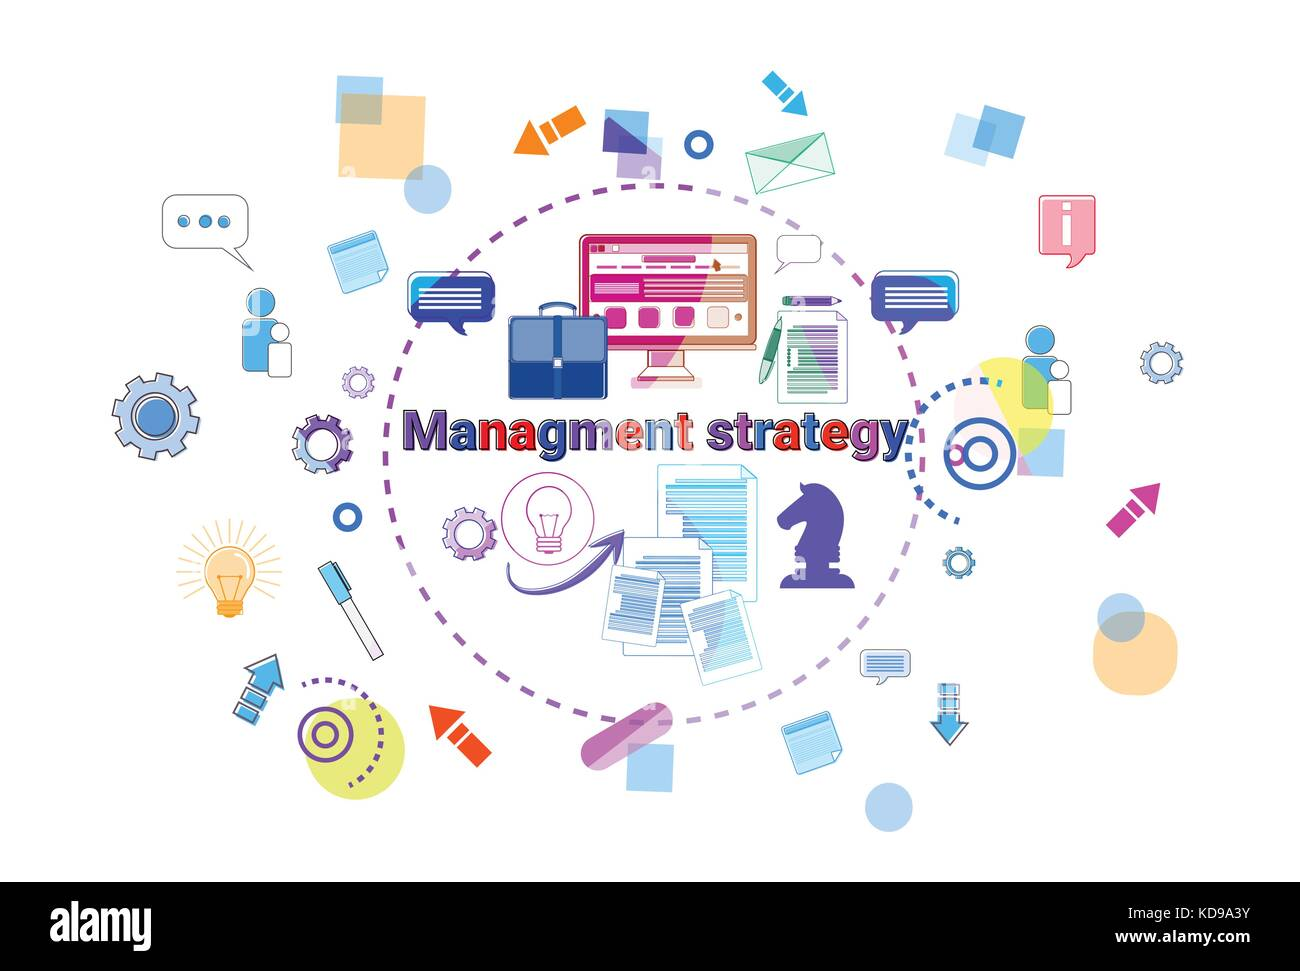 Business Management Strategy Concept Leadership Banner Stock Vector Image Art Alamy